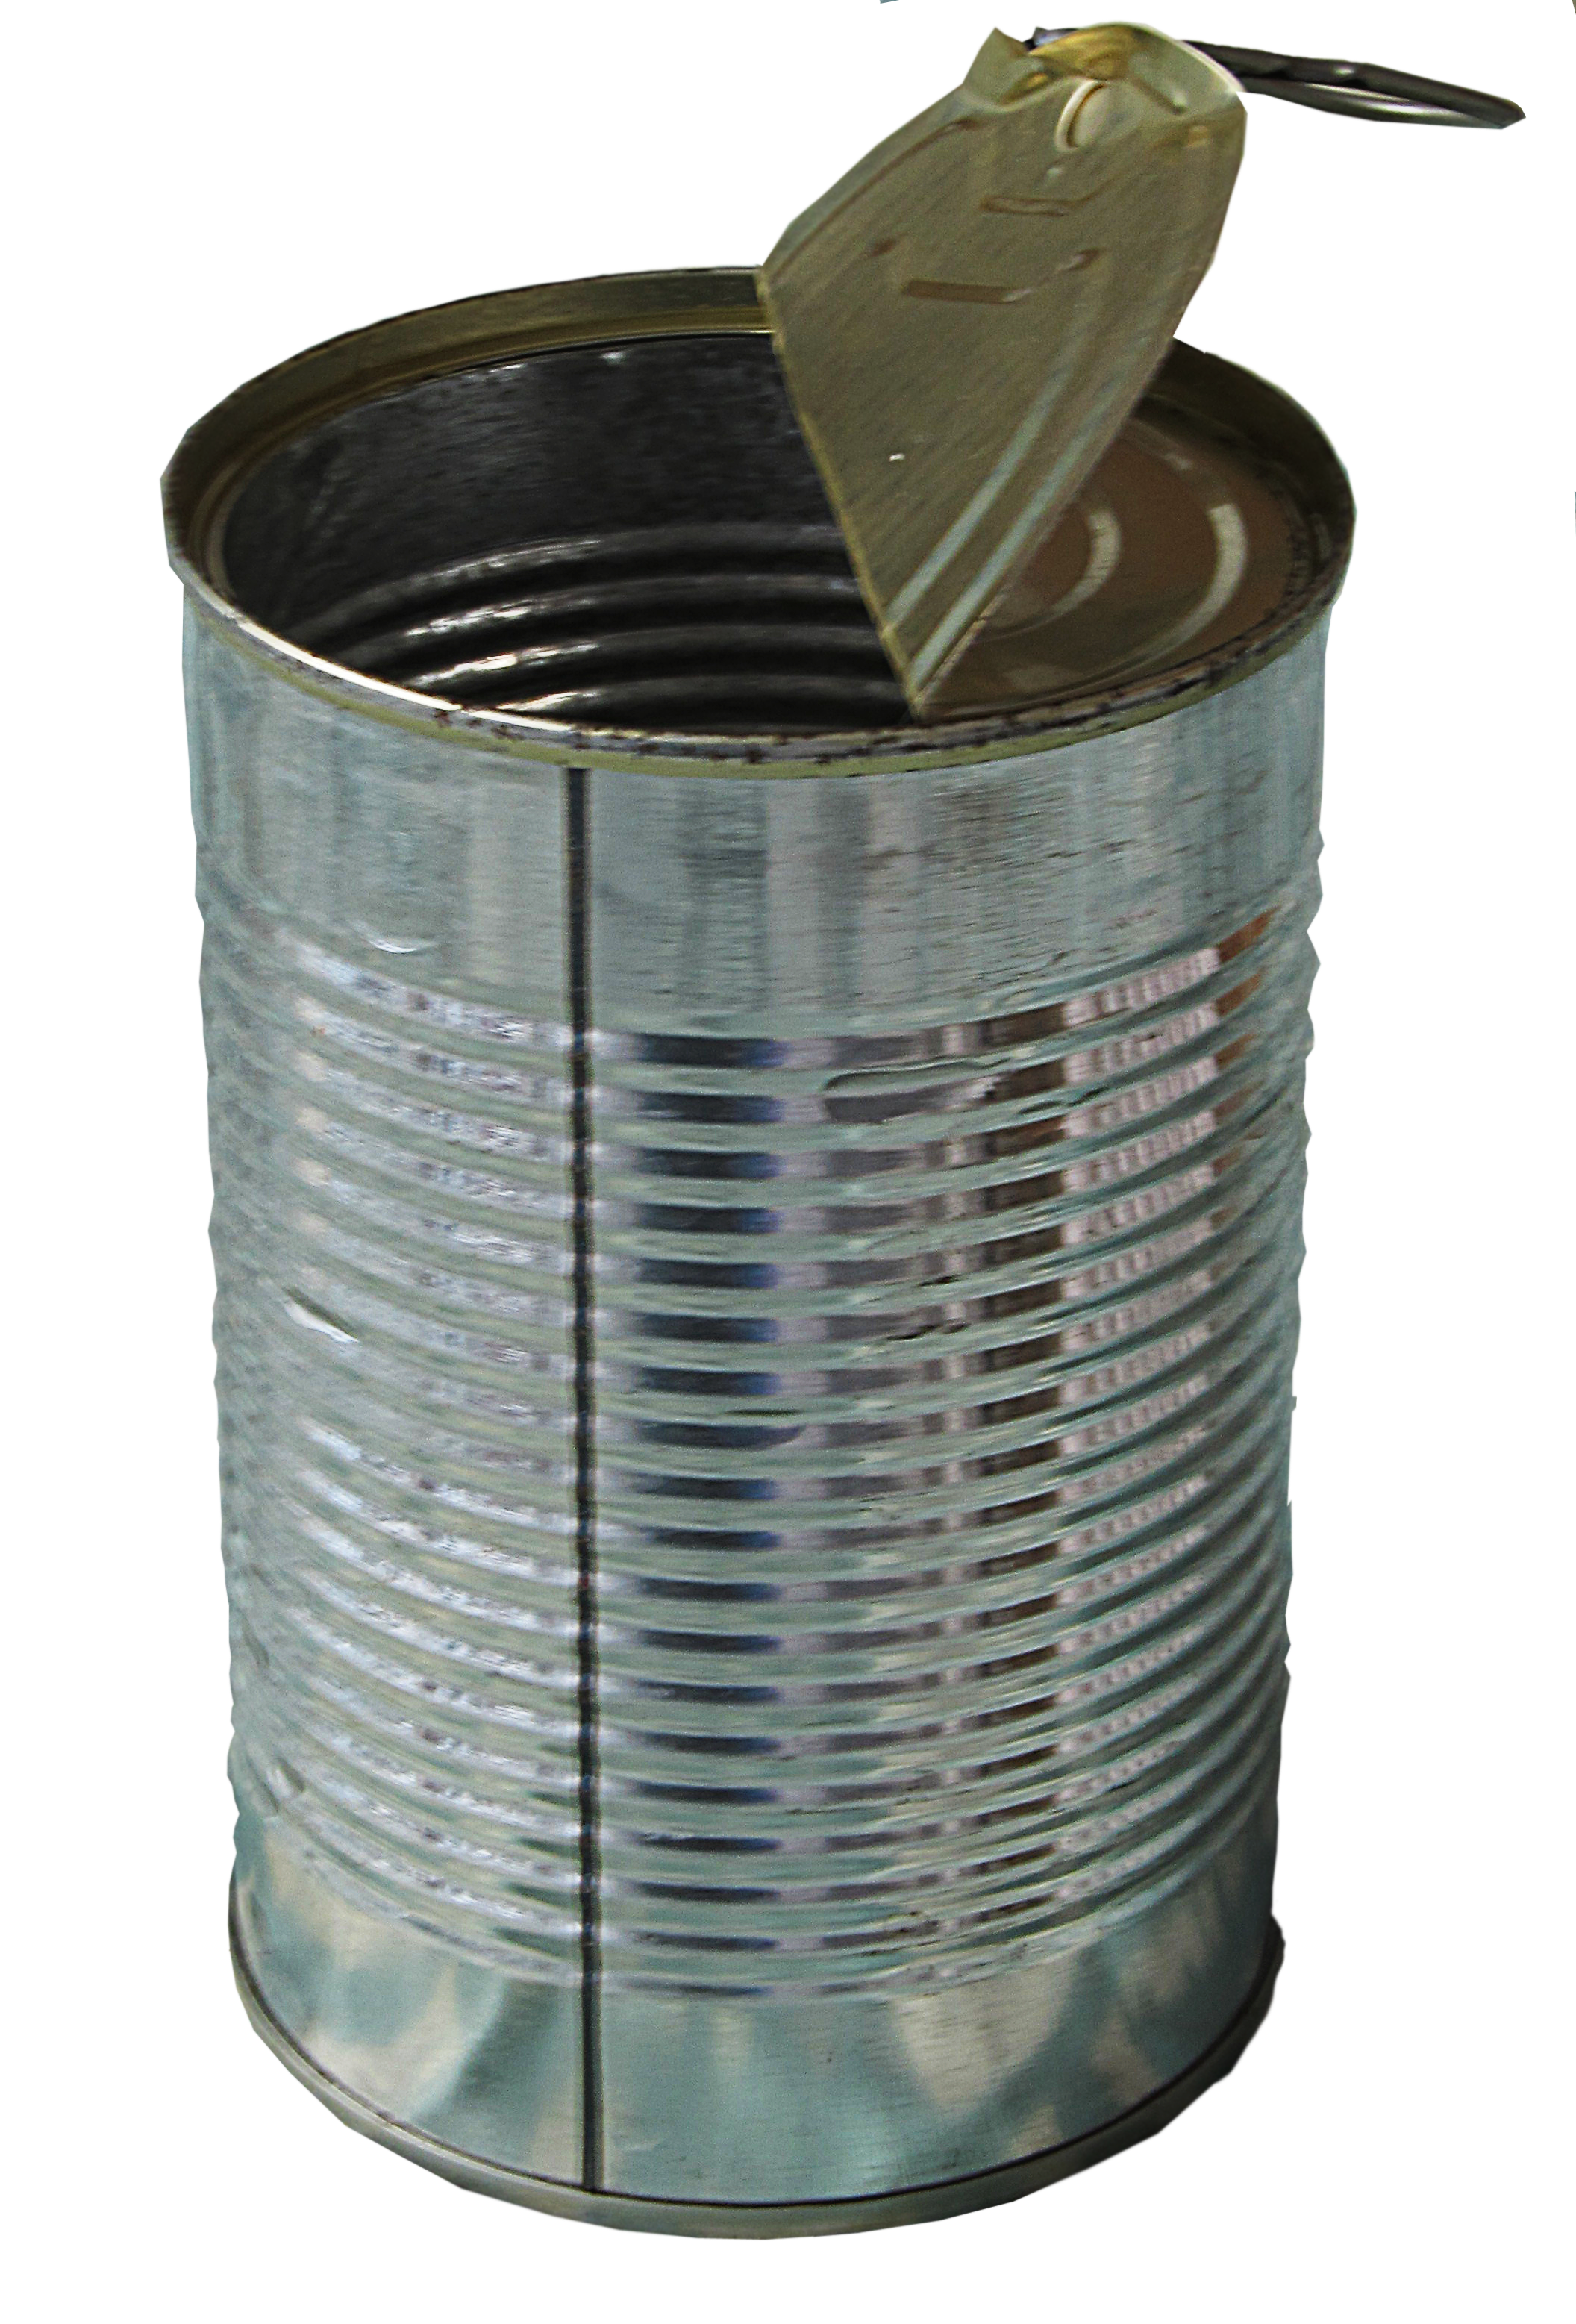 Tin Can Png By Amalus D K Qd   Free Images At Clker Com   Vector Clip